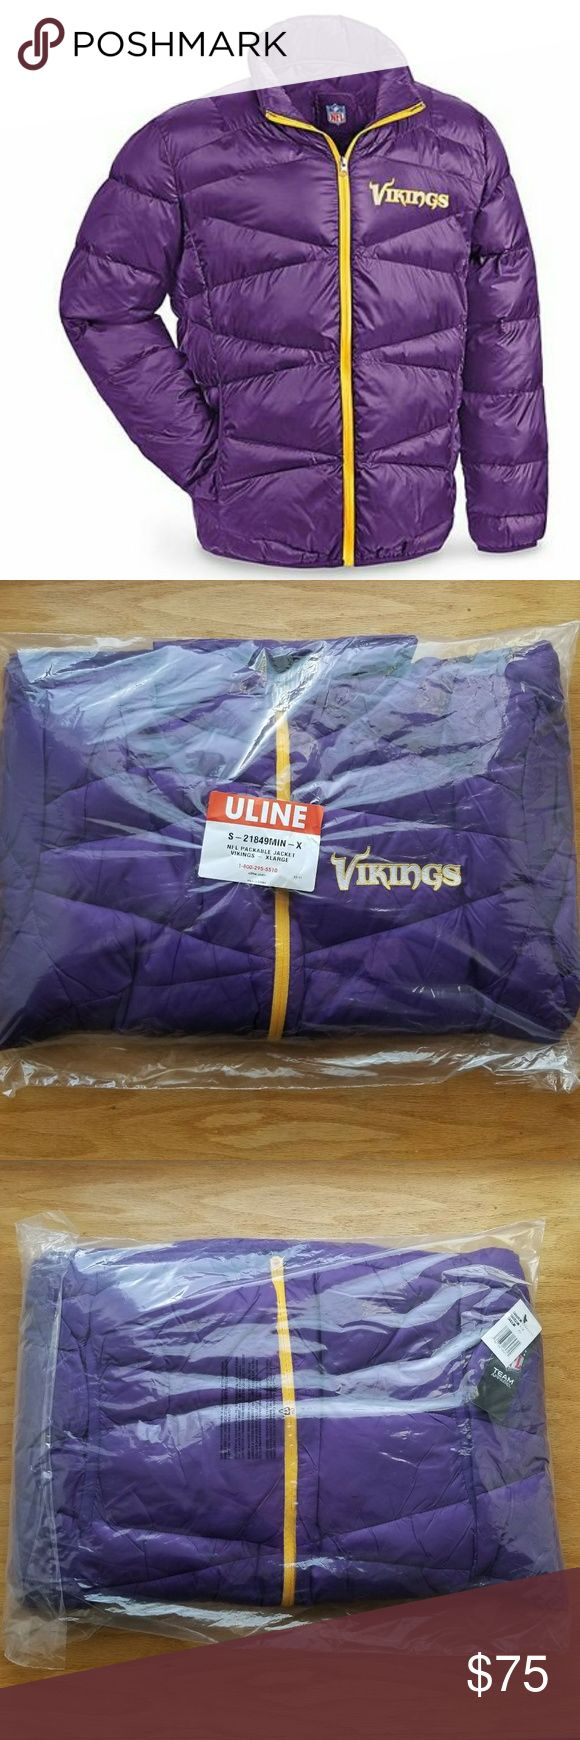 NFL VIKINGS PUFFER JACKET XL This is a Vikings puffer jacket. This will  show your team spirit in a cold Minnesota Winter. Brand new in packaging. NFL Jackets & Coats Puffers